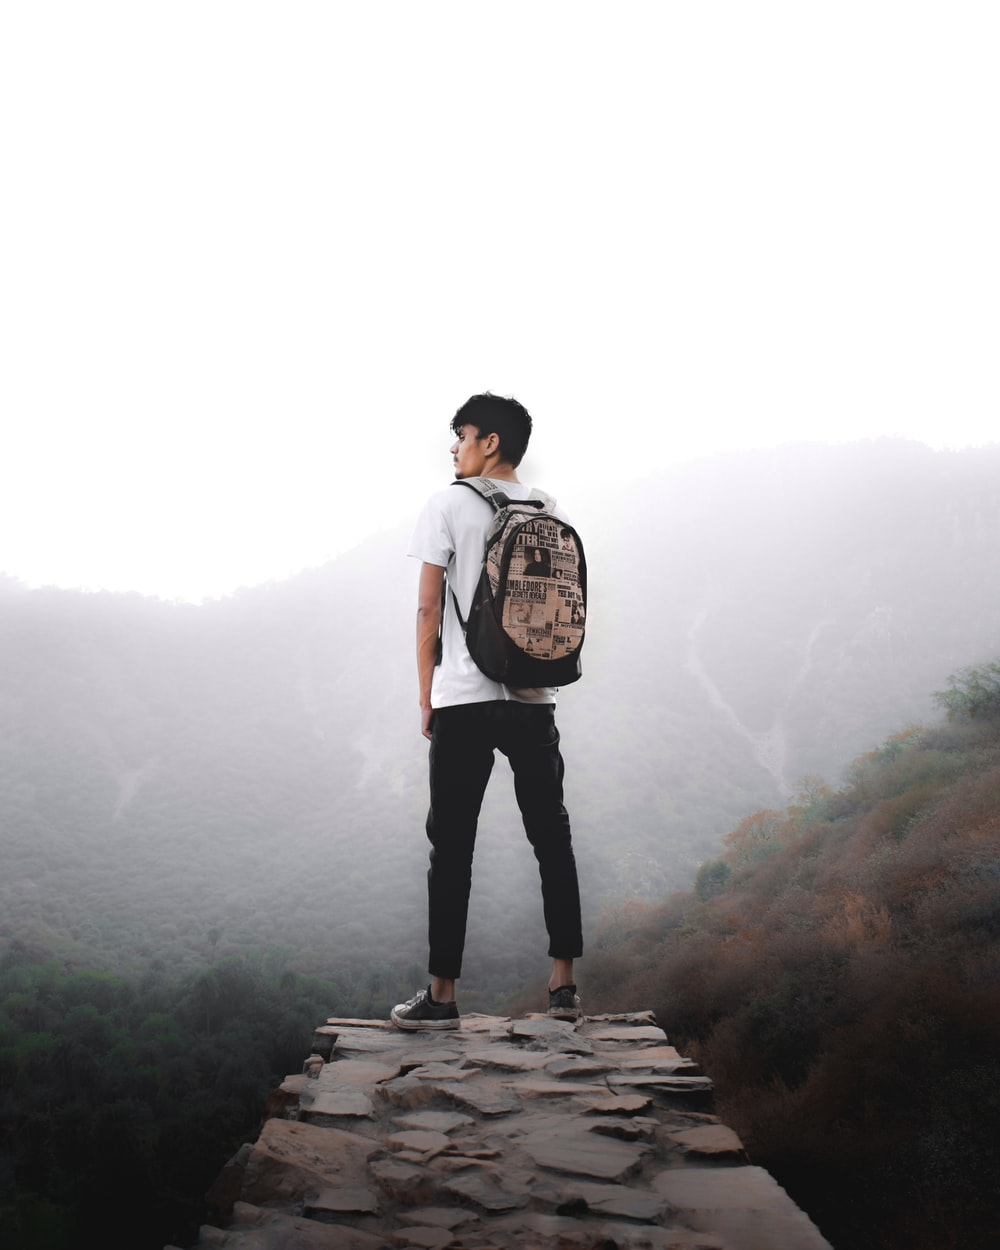 man in white t-shirt and black pants standing on rock formation during daytime